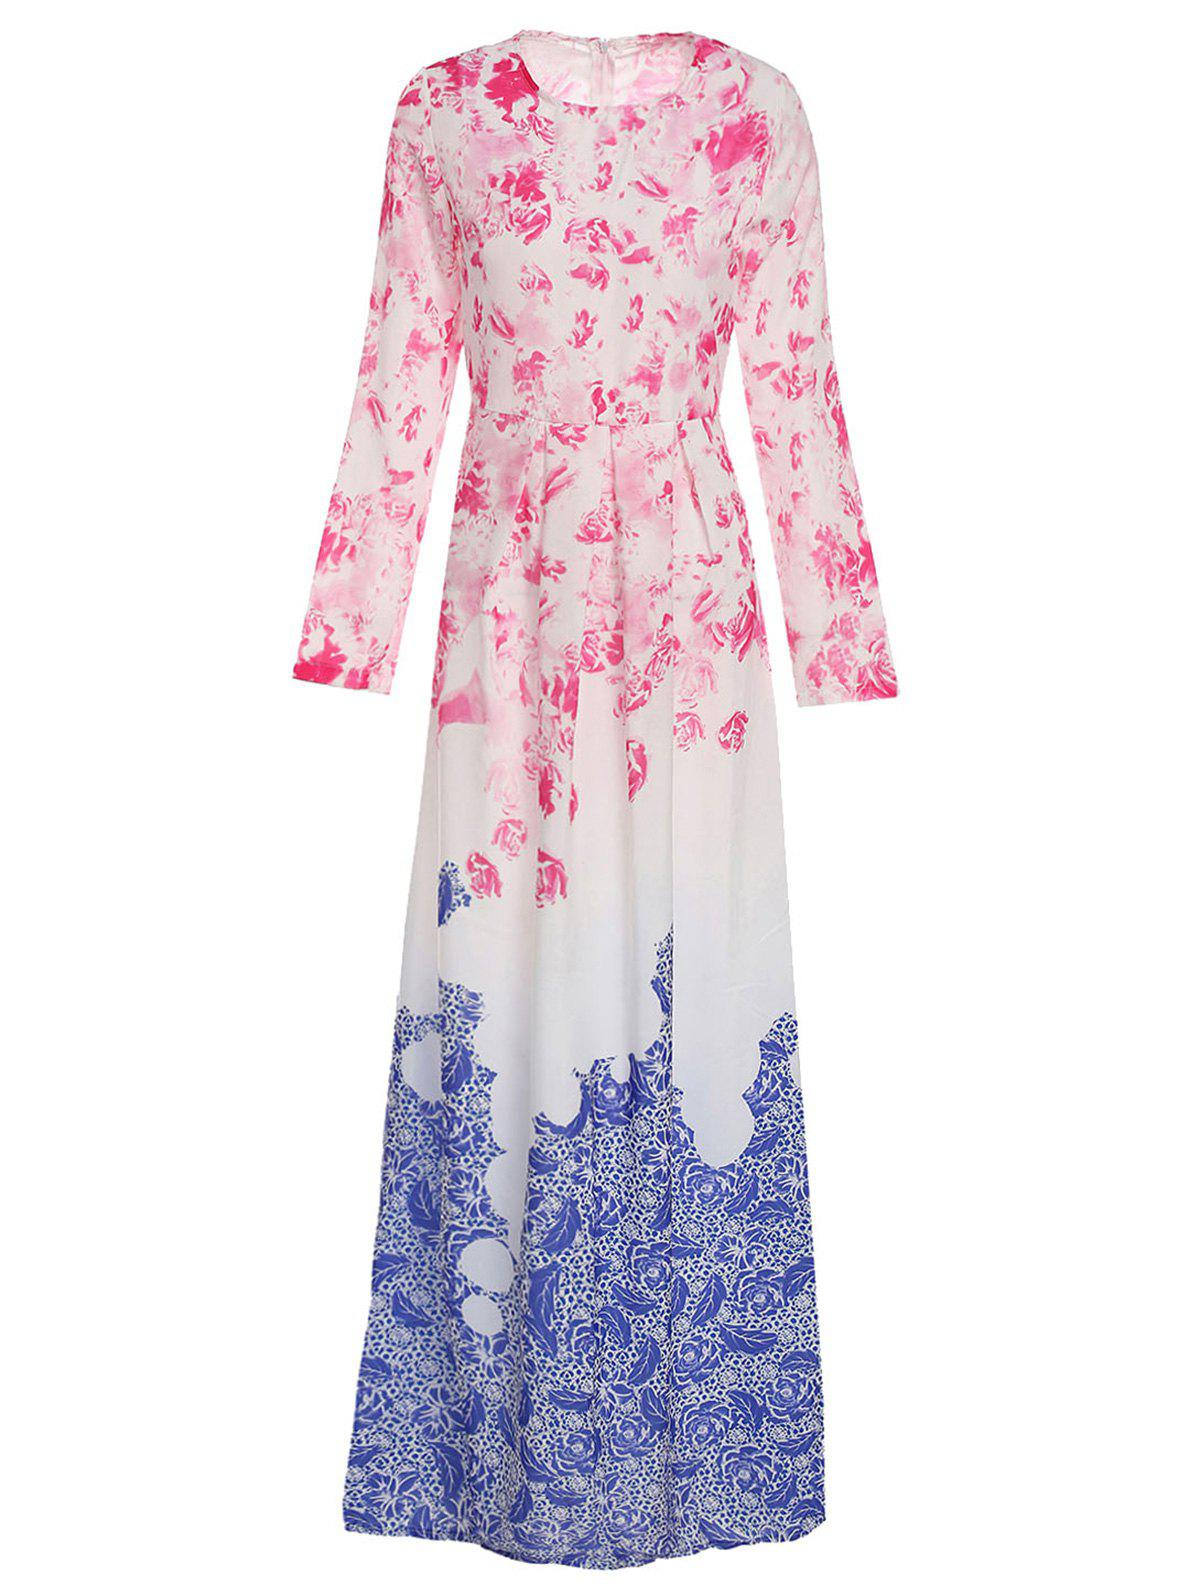 Unique Stylish Round Collar Ombre Flower Long Sleeve Dress For Women